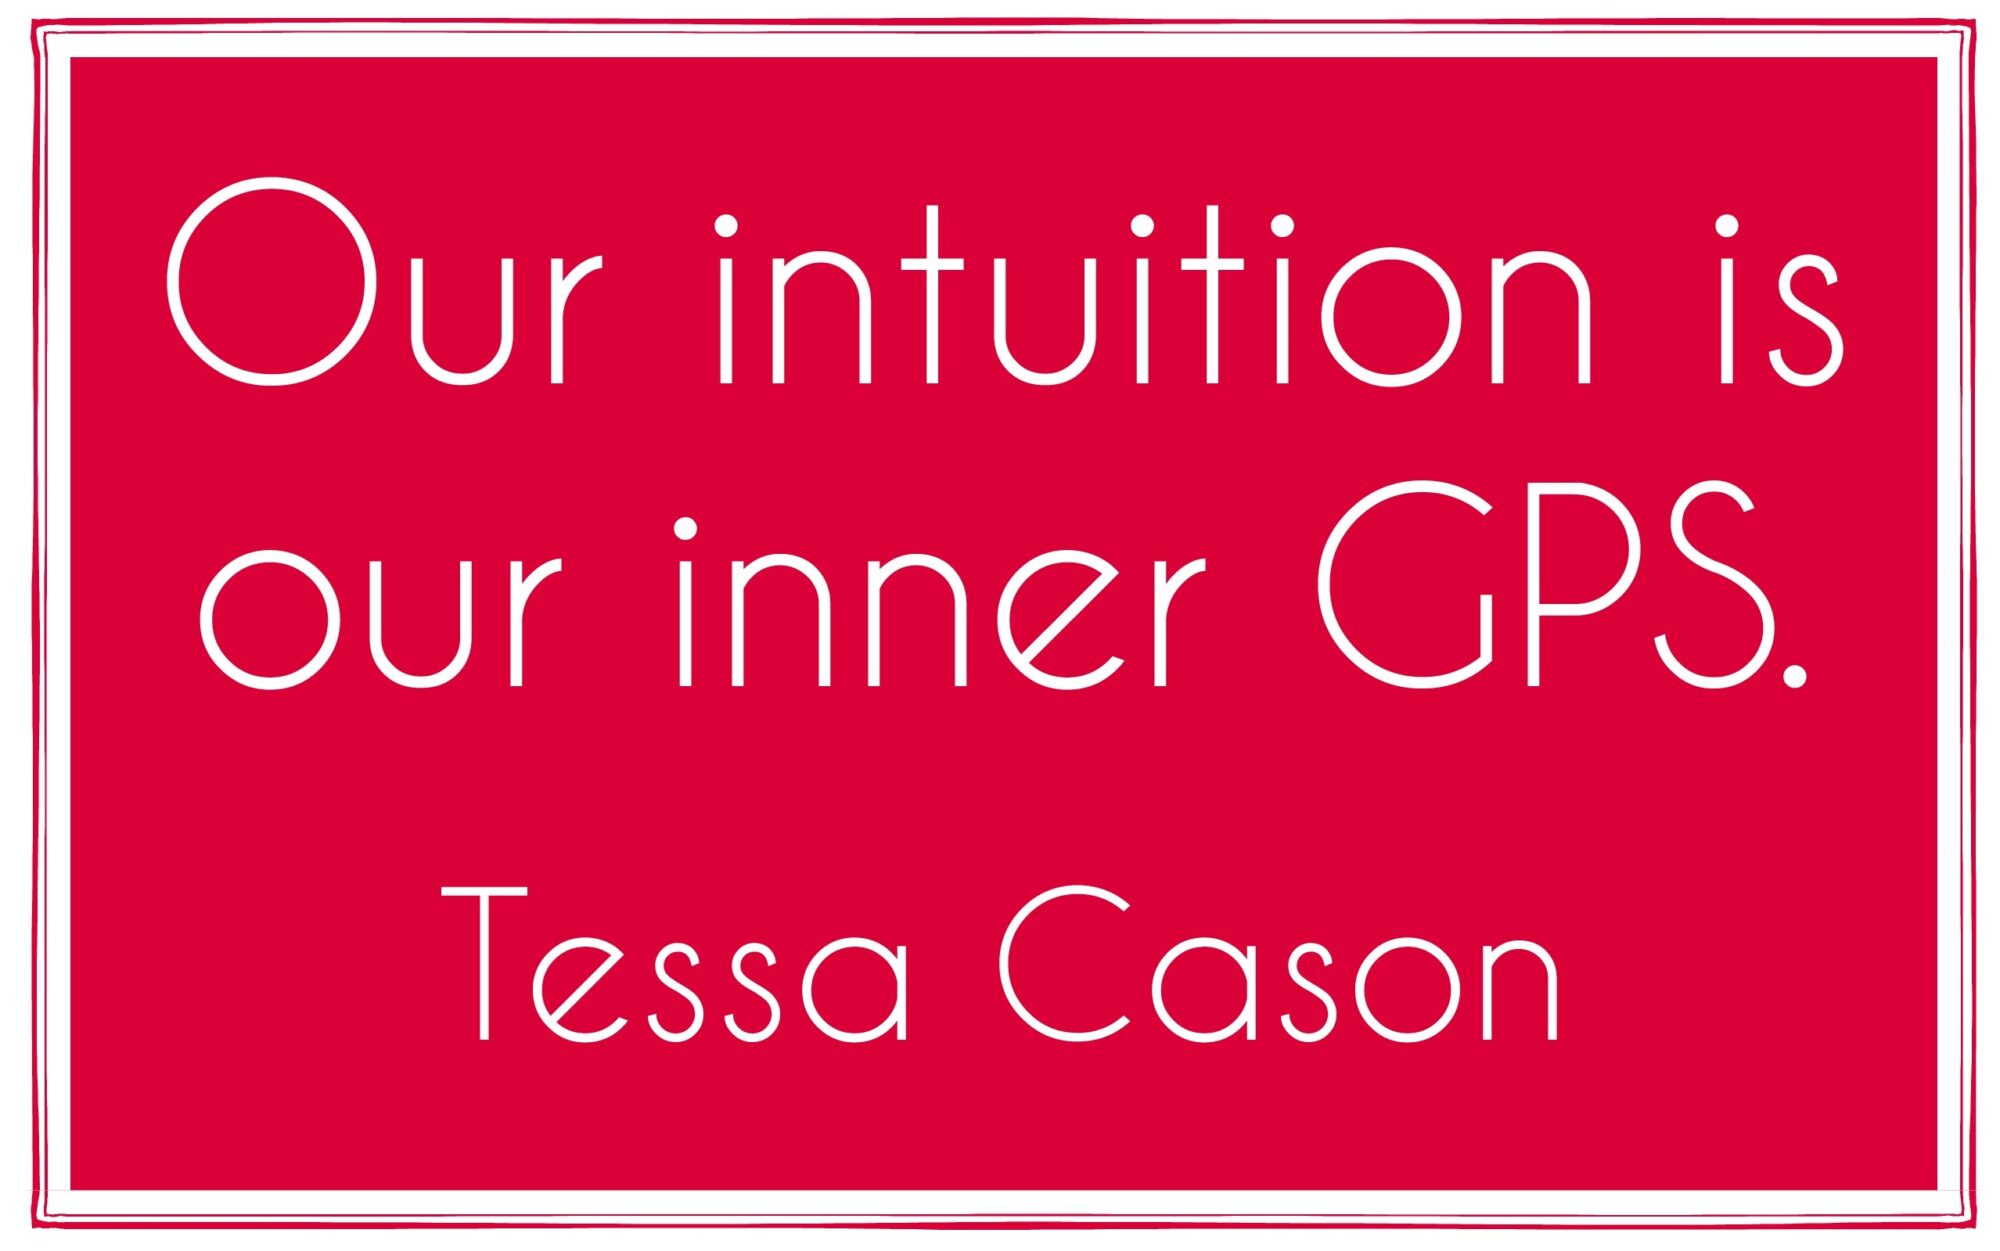 Our Intuition is our Inner GPS